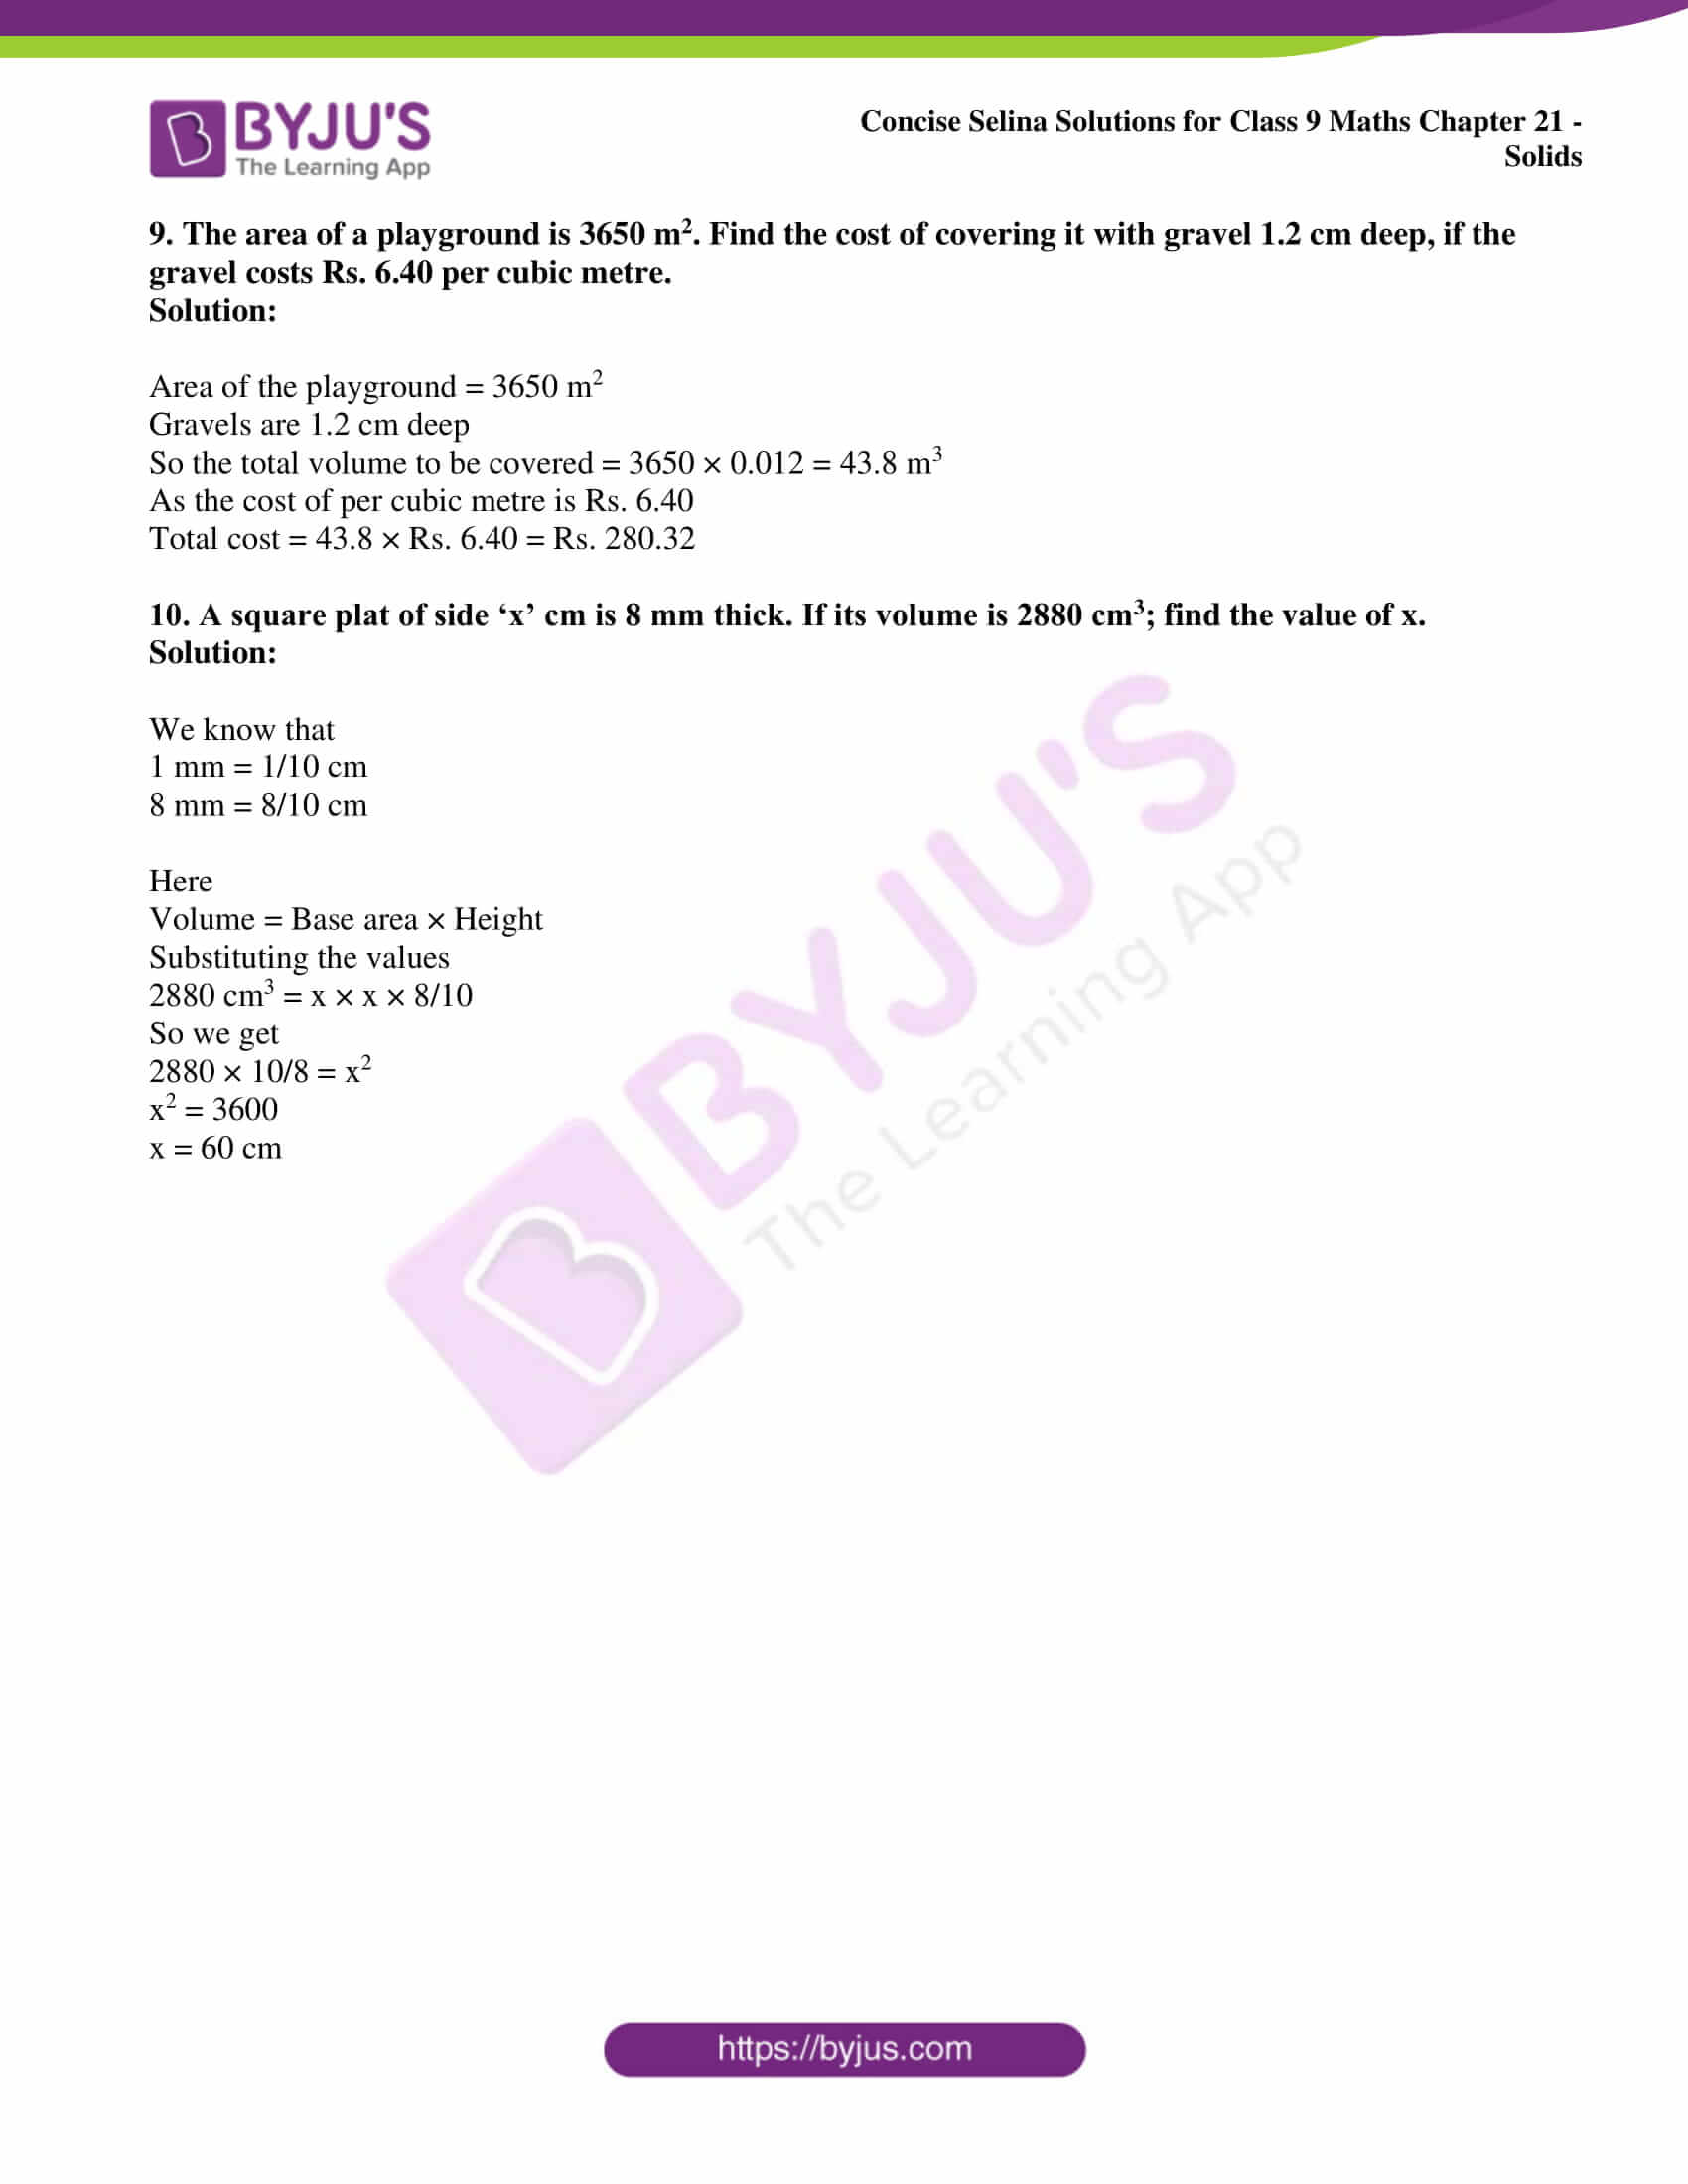 icse class 9 maths may10 selina solutions chapter 21 solids 04